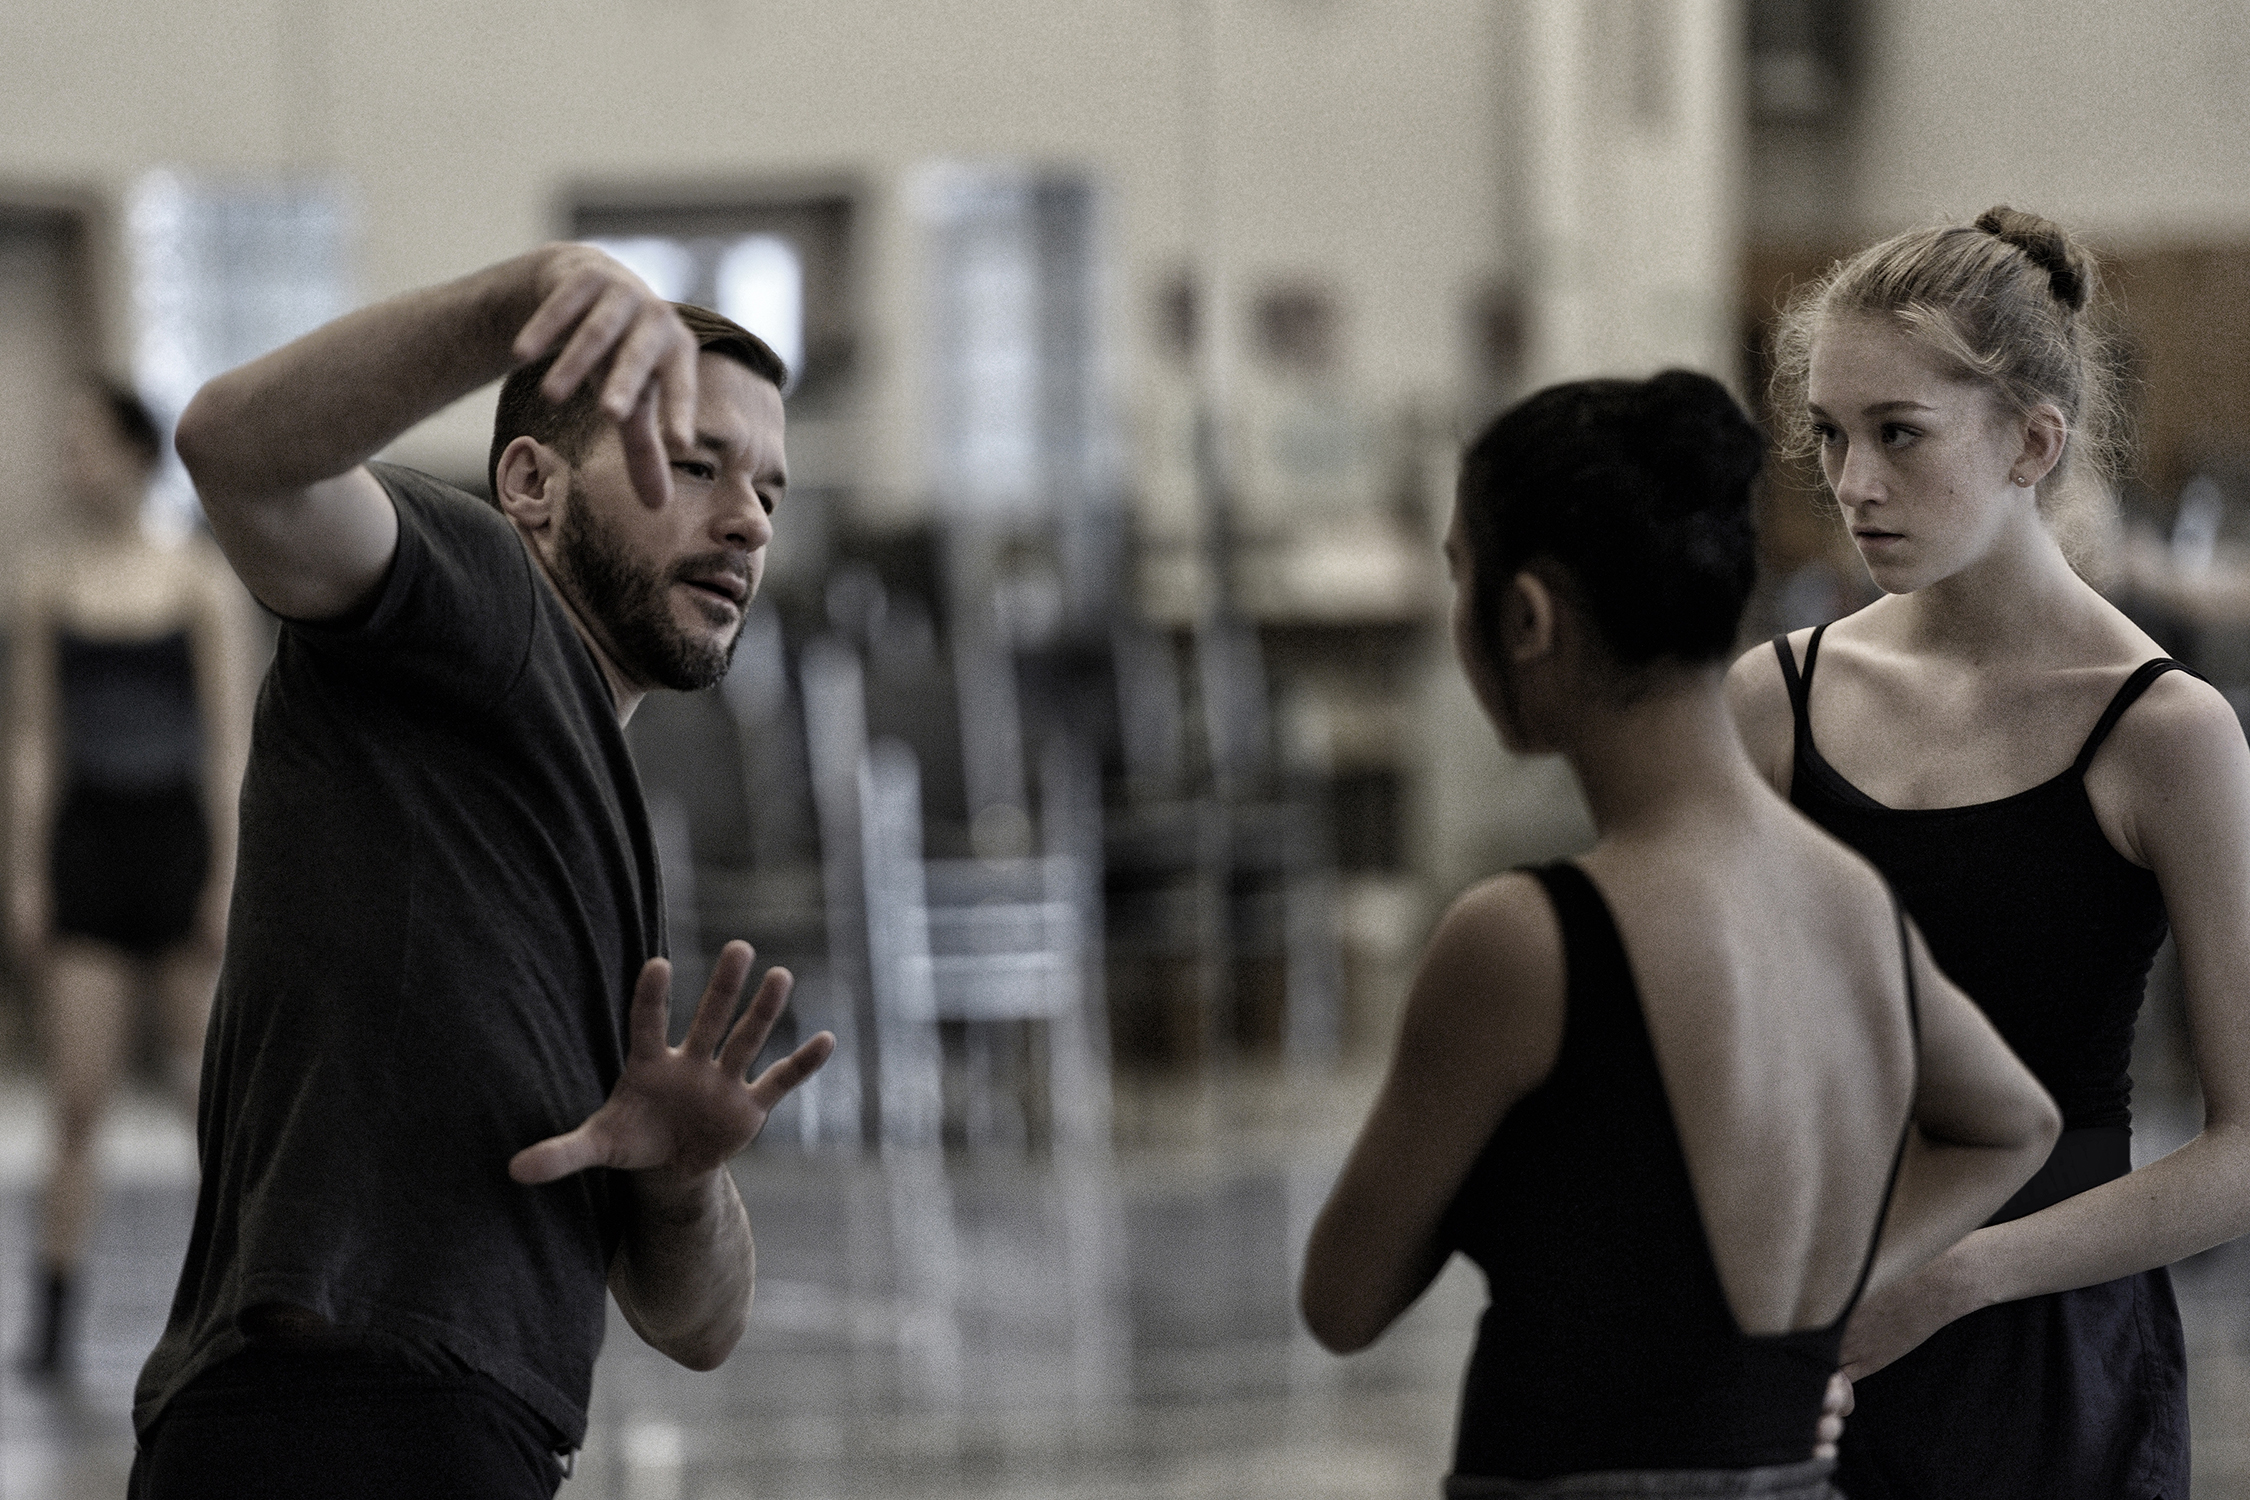 In rehearsal for a new work at Arts Umbrella (Vancouver)with Cordelia Pentland and Kiana Jung.Photo by Michael Slobodian, courtesy of Arts Umbrella.